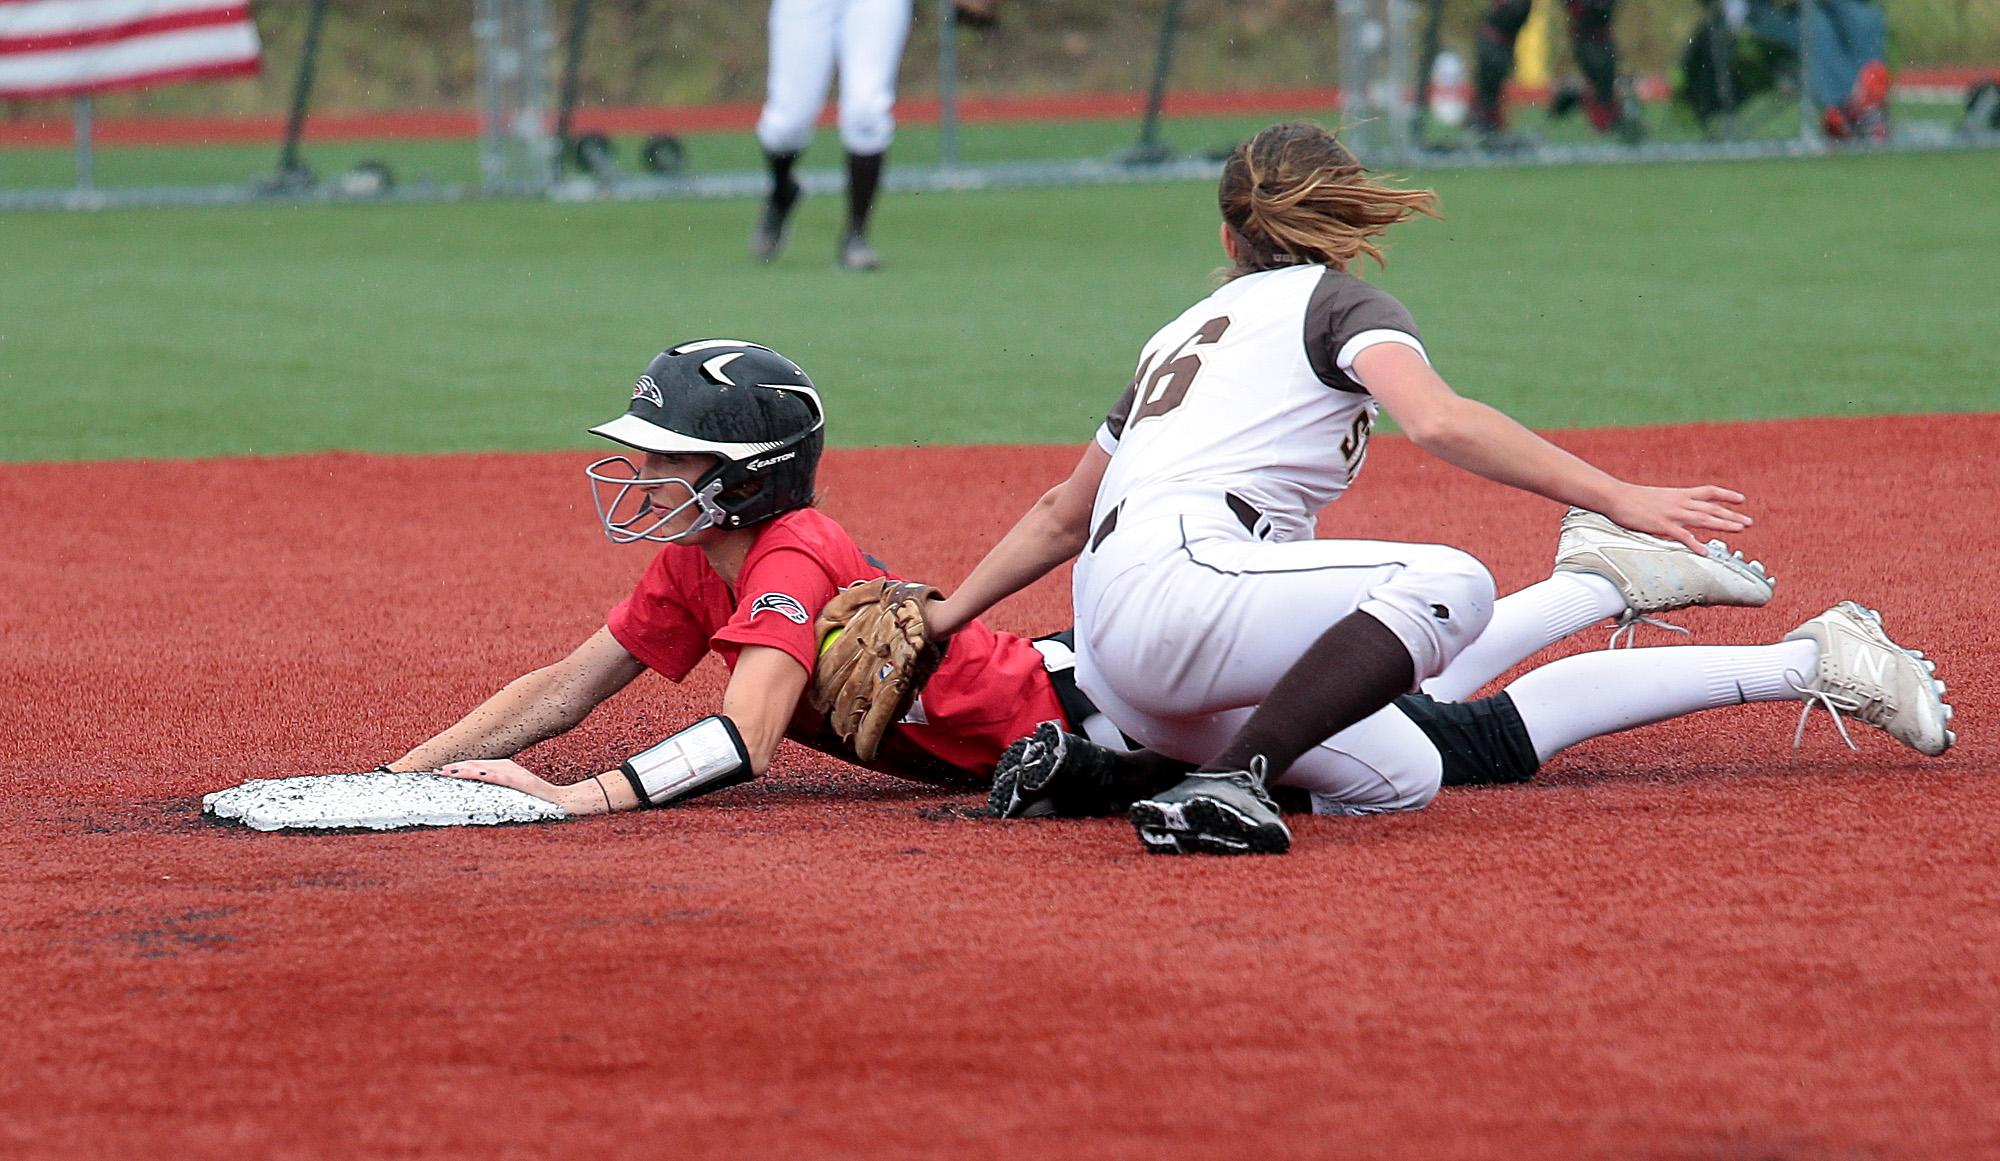 Larry Stauth Jr./For the Daily TidingsSouthern Oregon University freshman Hannah Shimek slides in under the tag by St. Francis shortstop Ashley Galason at U.S. Cellular Community Park on Wednesday.